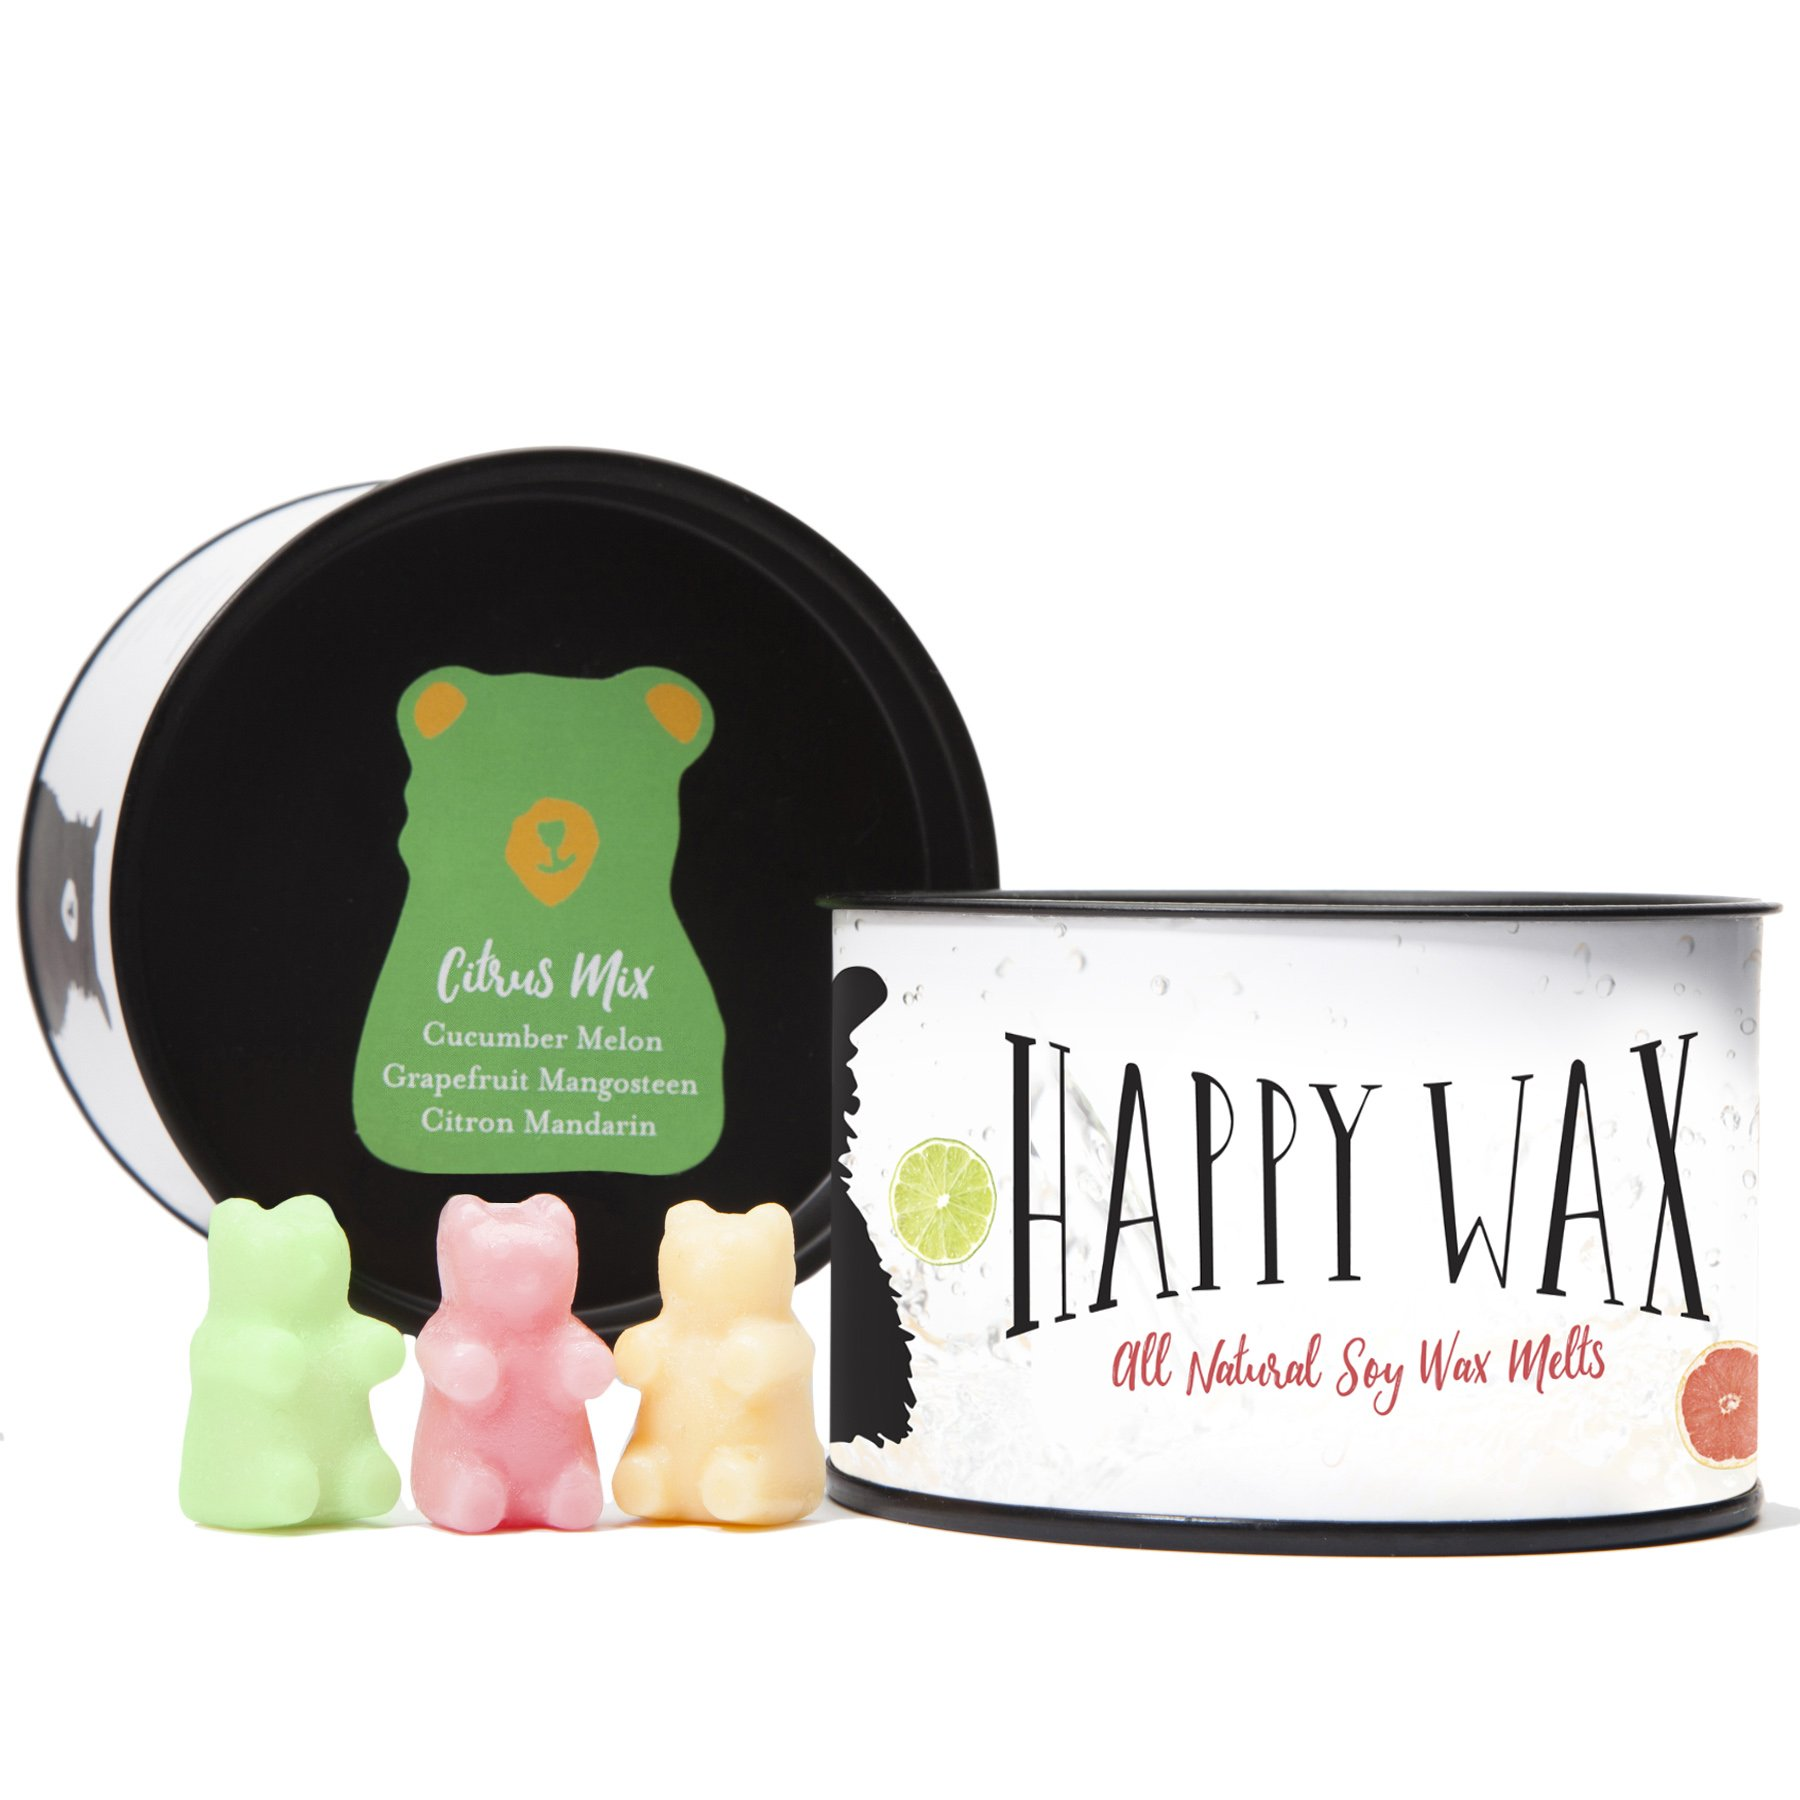 Happy Wax - Four Mixed Tins Wax Melt Gift Set - Includes 3.6 Oz Each of Our Scented Soy Wax Melts in Our Cocktail Mix, Fresh Mix, Citrus Mix, and Spa Day Mix! by Happy Wax (Image #3)